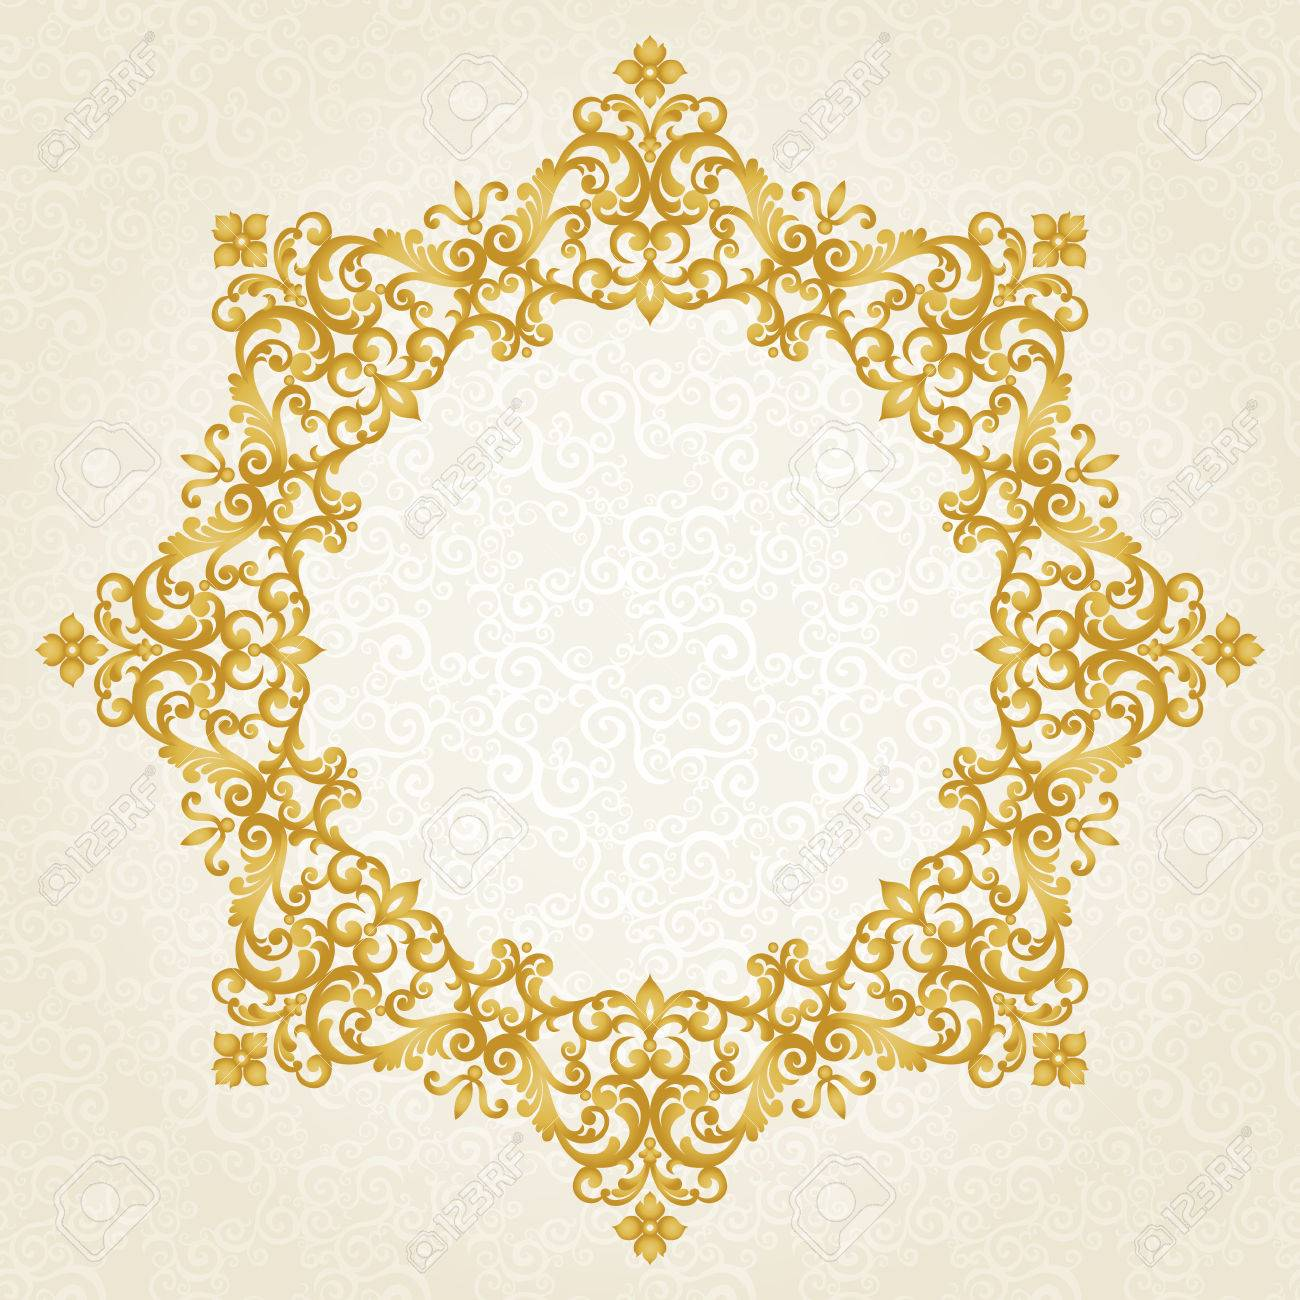 Vector ornate frame in victorian style decorative element for vector ornate frame in victorian style decorative element for design and place for text junglespirit Image collections